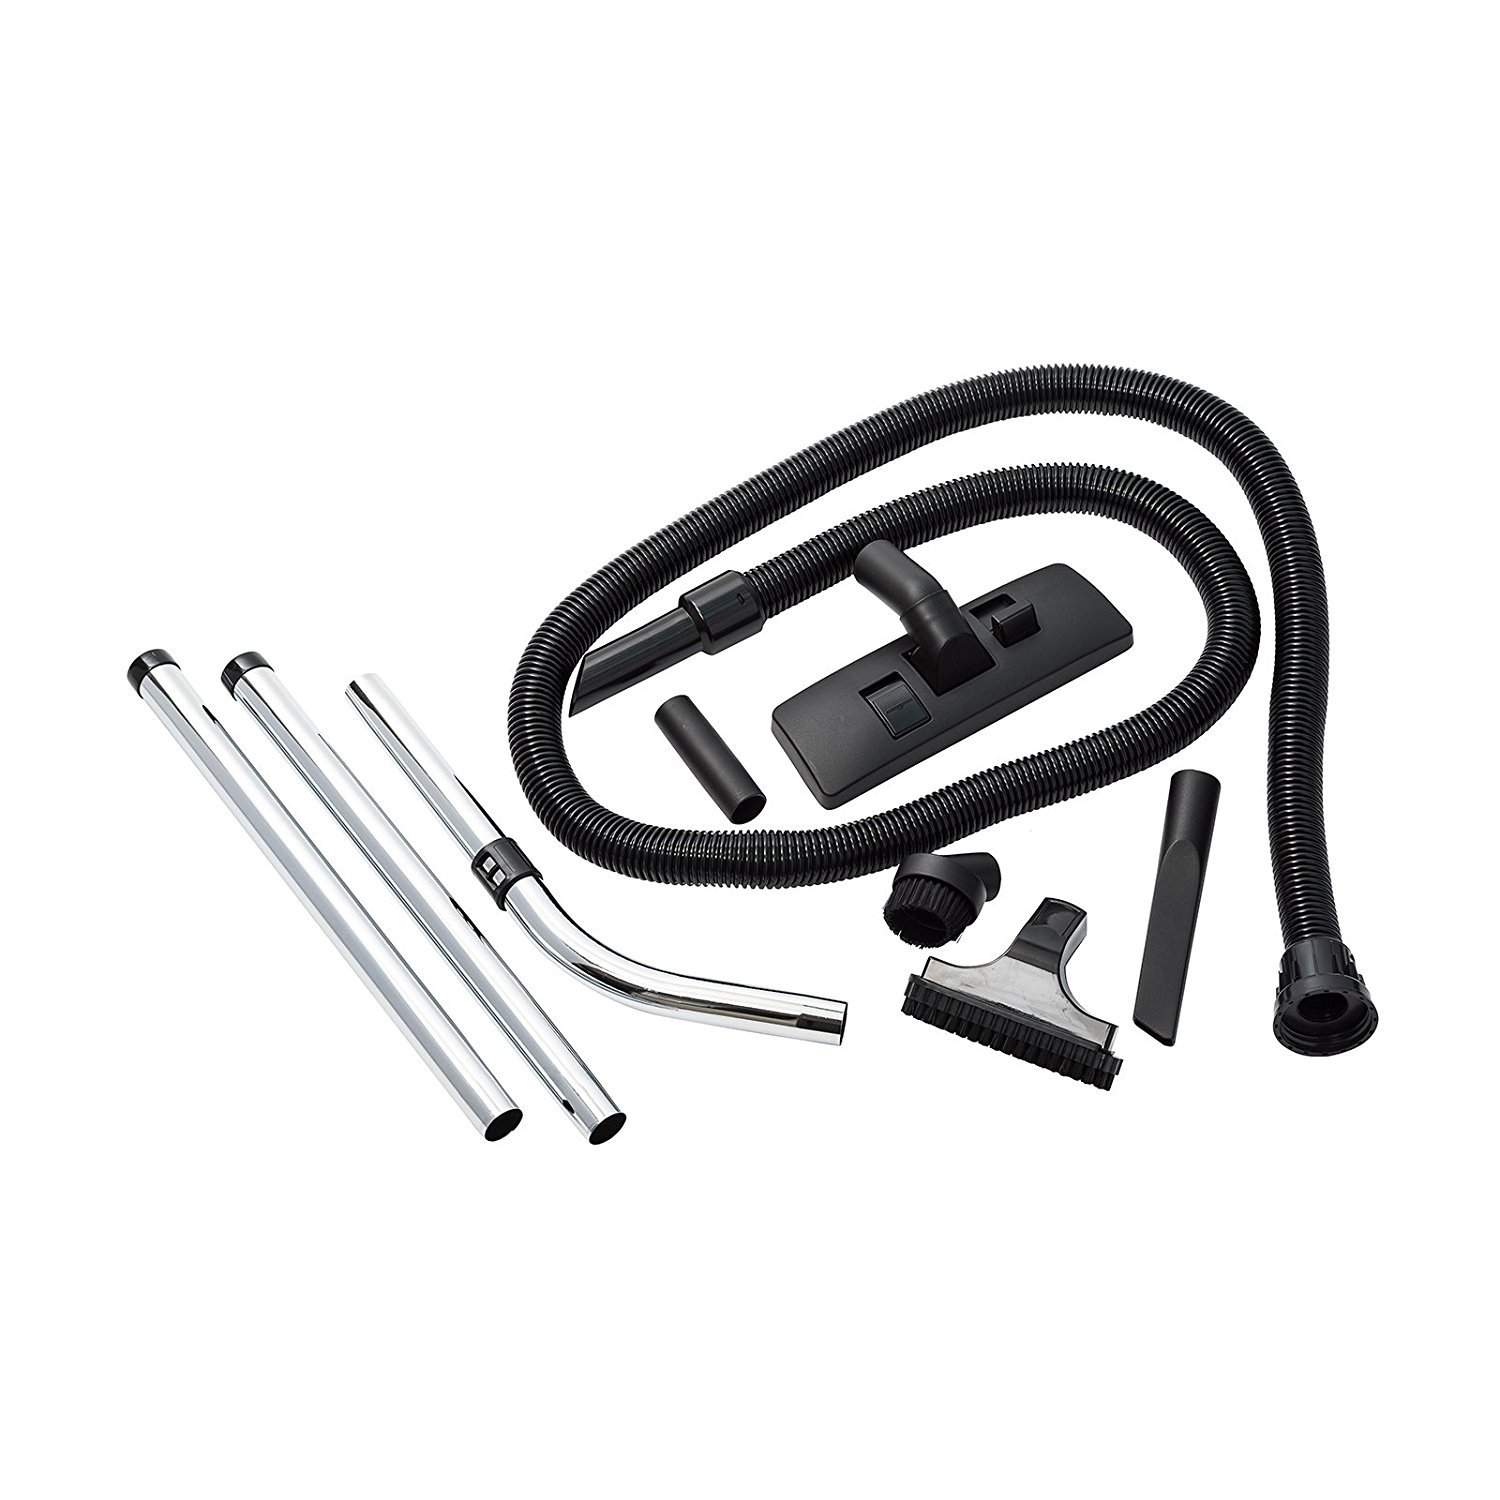 Compatible Full Hose Tool Kit 2.5 Mtr for Numatic Henry Vacuum Cleaner Generic QUATOOLKIT2.5.VEN